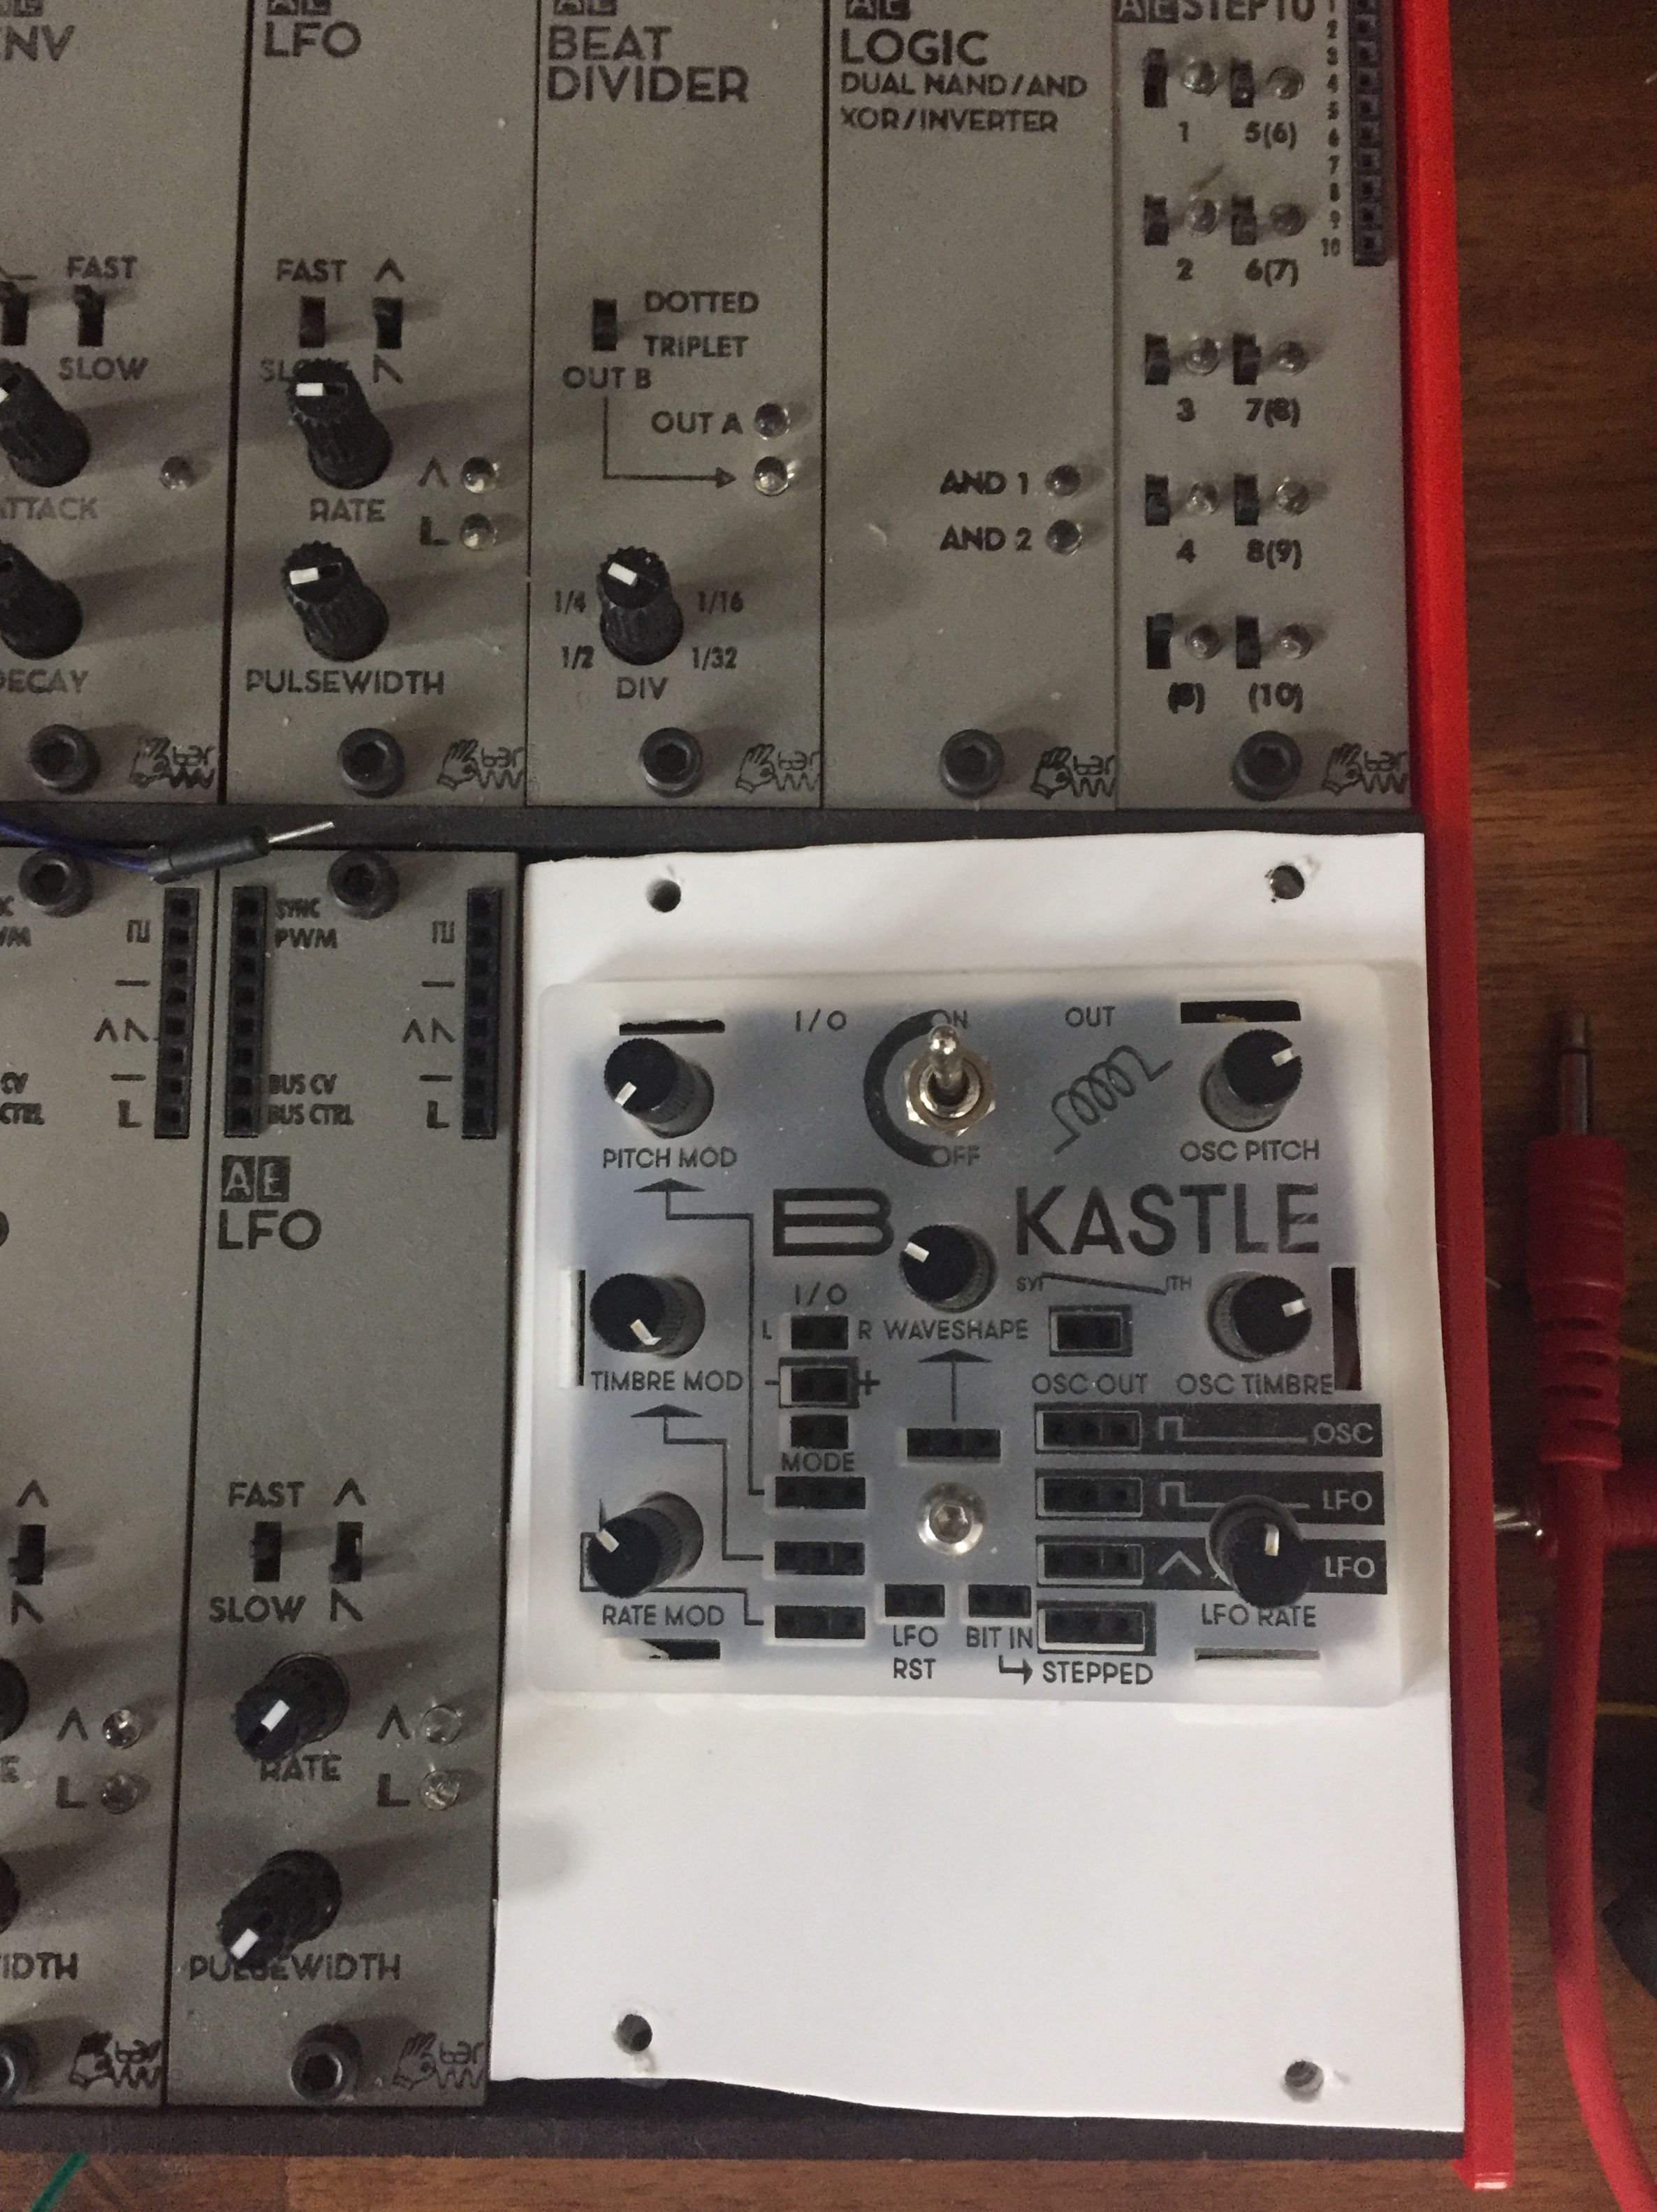 AE Modular: budget analog modular synth - Equipment - lines